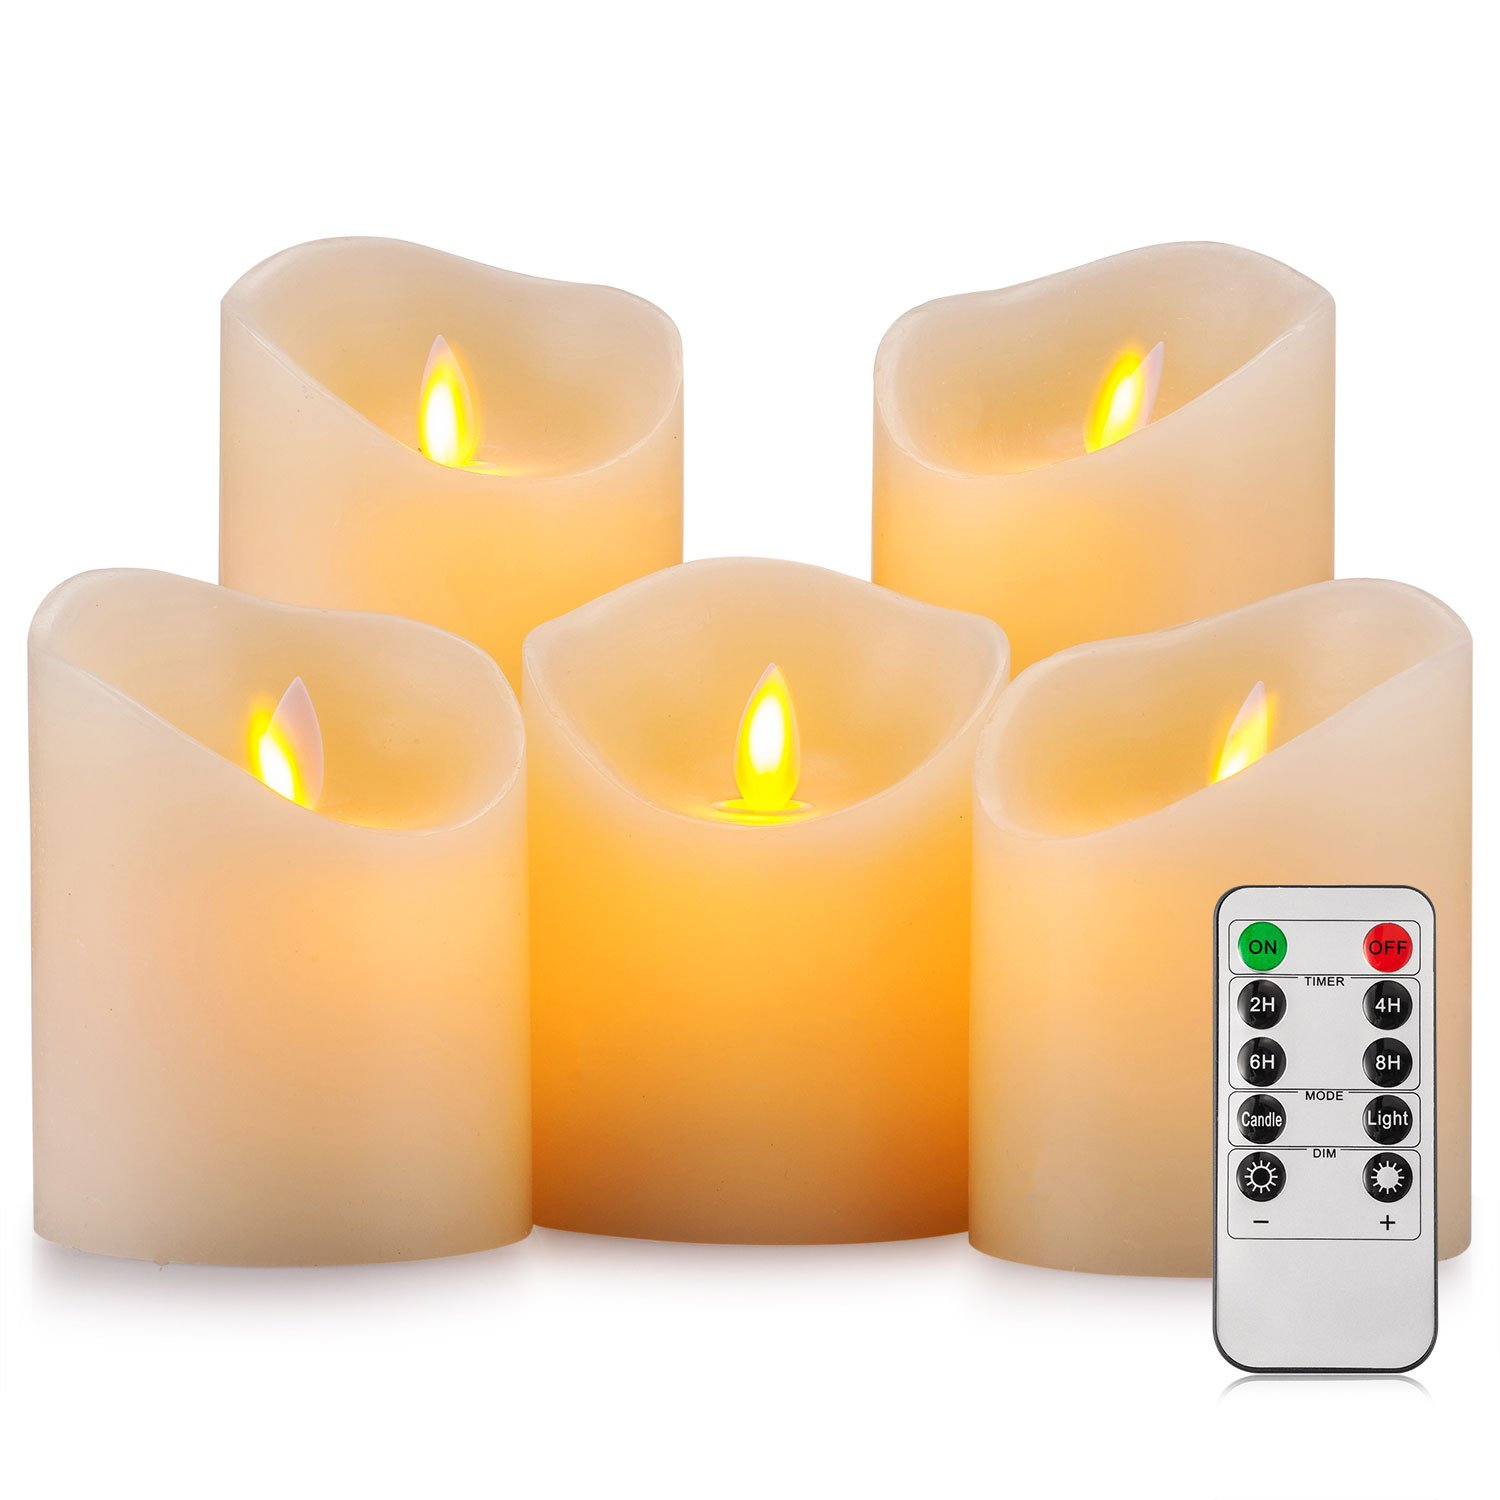 Pandaing Battery Operated Candles Set of 5 Pillar Realistic Moving Flame Real Wax Flameless Flickering LED Candles with Remote Control 2 4 6 8 Hours Timer by Pandaing